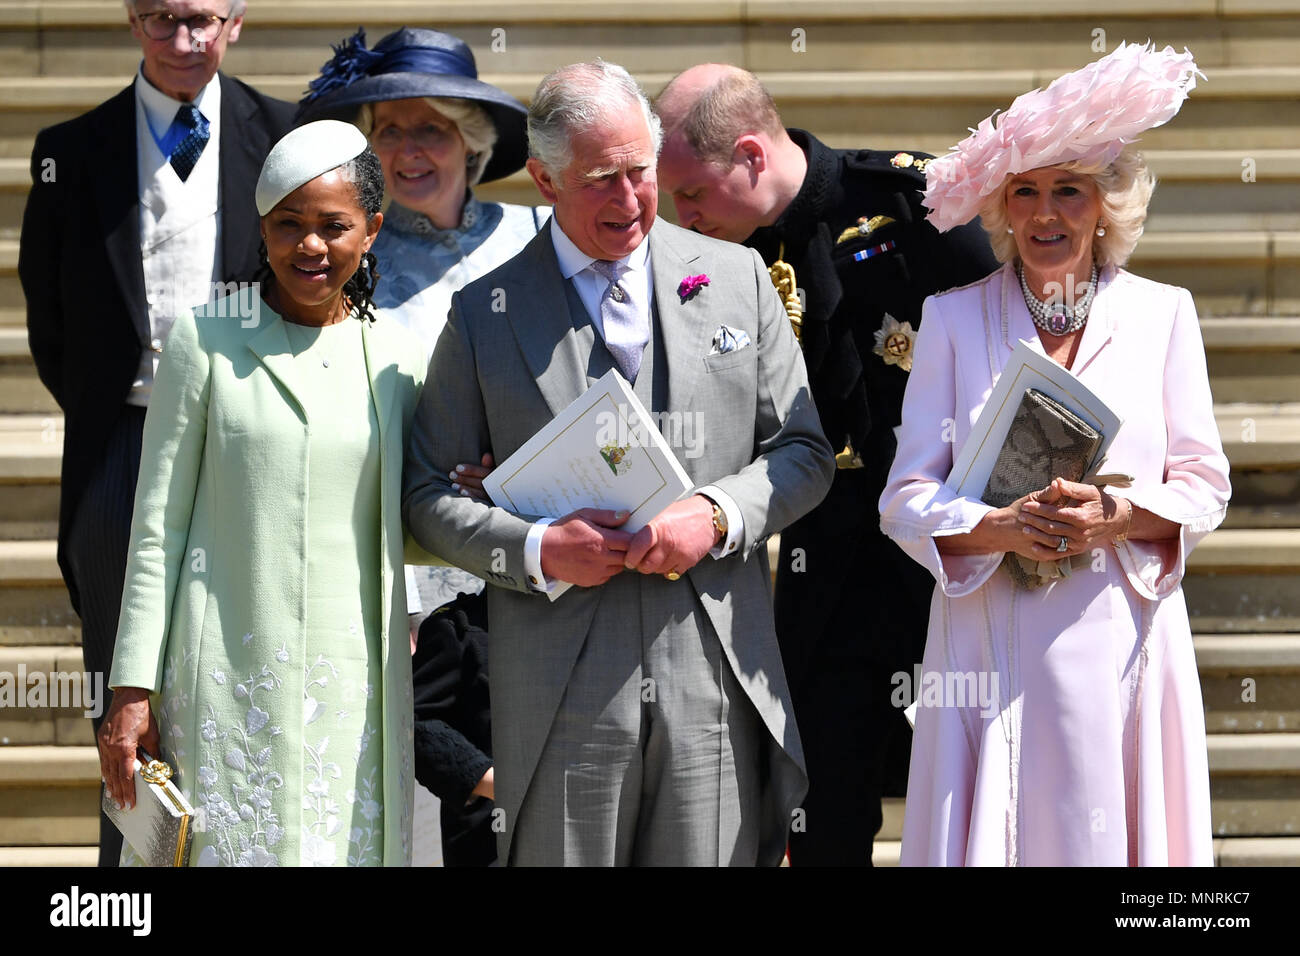 Meghan Markle's mother Doria Ragland, the Prince of Wales and the Duchess of Cornwall, leave the wedding ceremony of Prince Harry, and Meghan Markle at St George's Chapel, Windsor Castle, in Windsor. Stock Photo